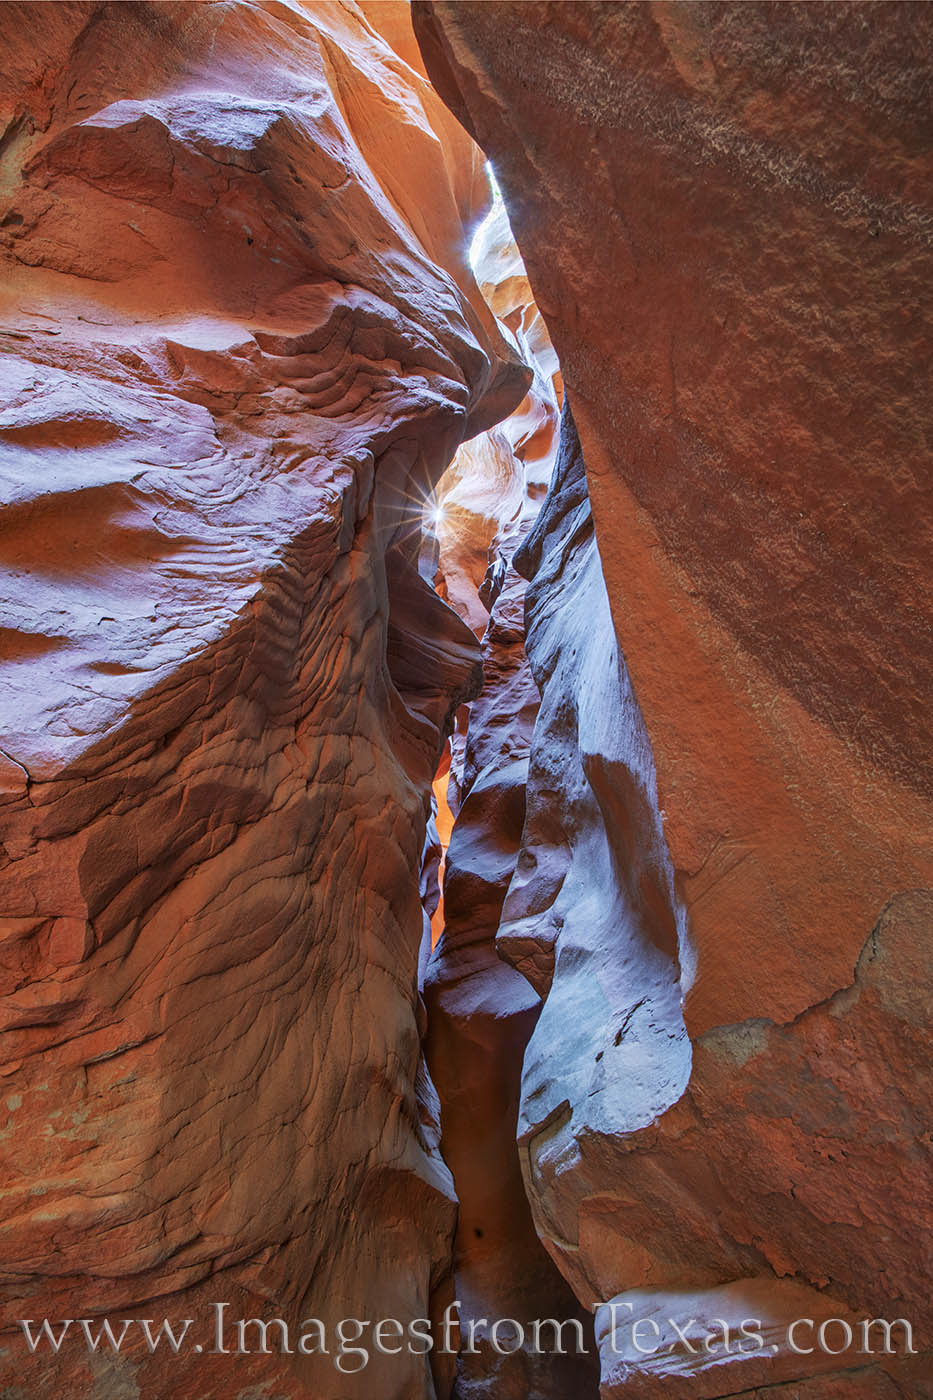 In passageways that are nearly too narrow for a person to fit through, the sun's rays sneak through this beautiful slot canyon...